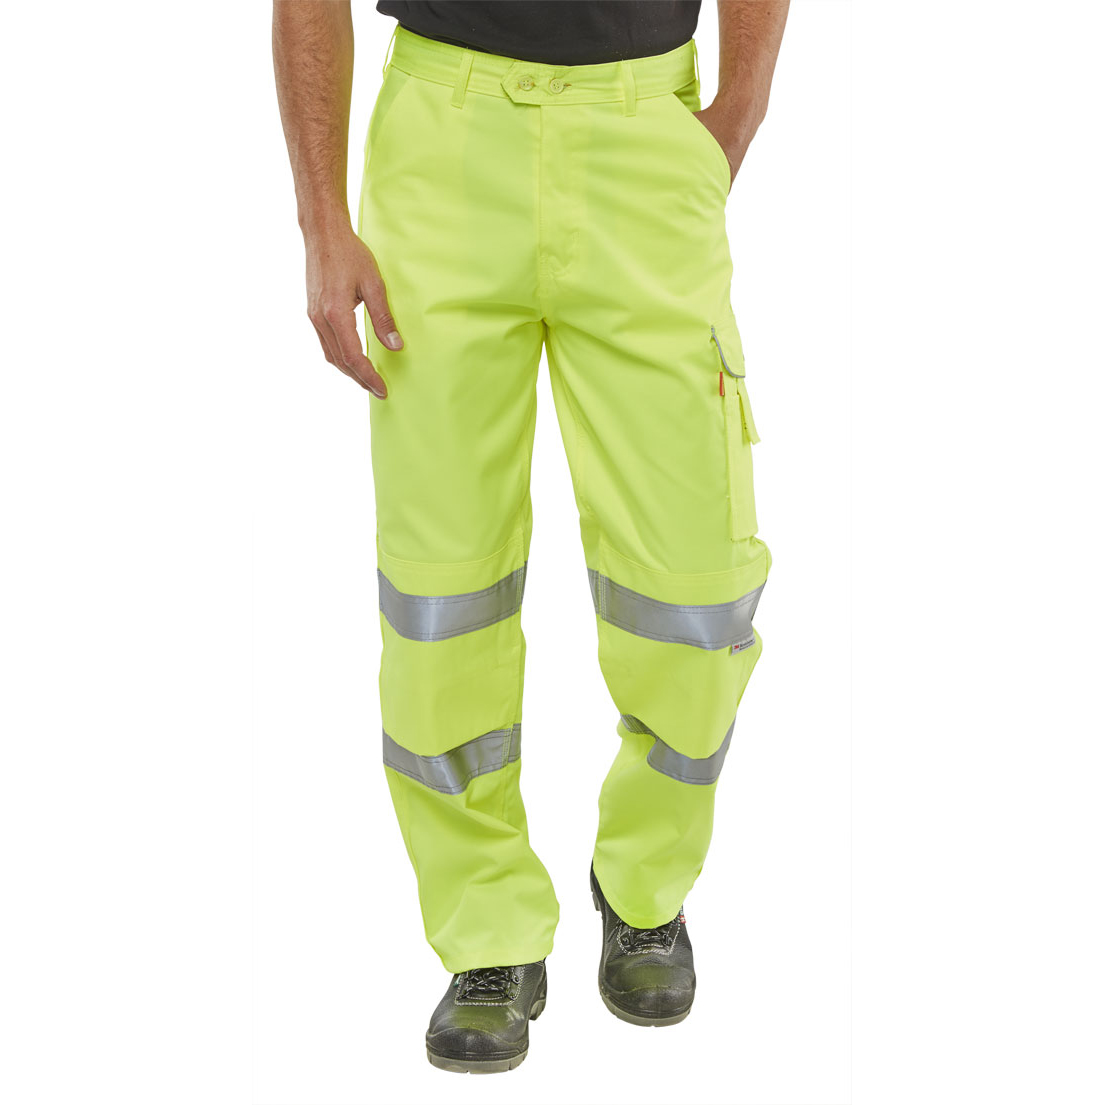 BSeen Trousers Polycotton Hi-Vis EN471 Saturn Yellow 36 Ref PCTENSY36 *Up to 3 Day Leadtime*